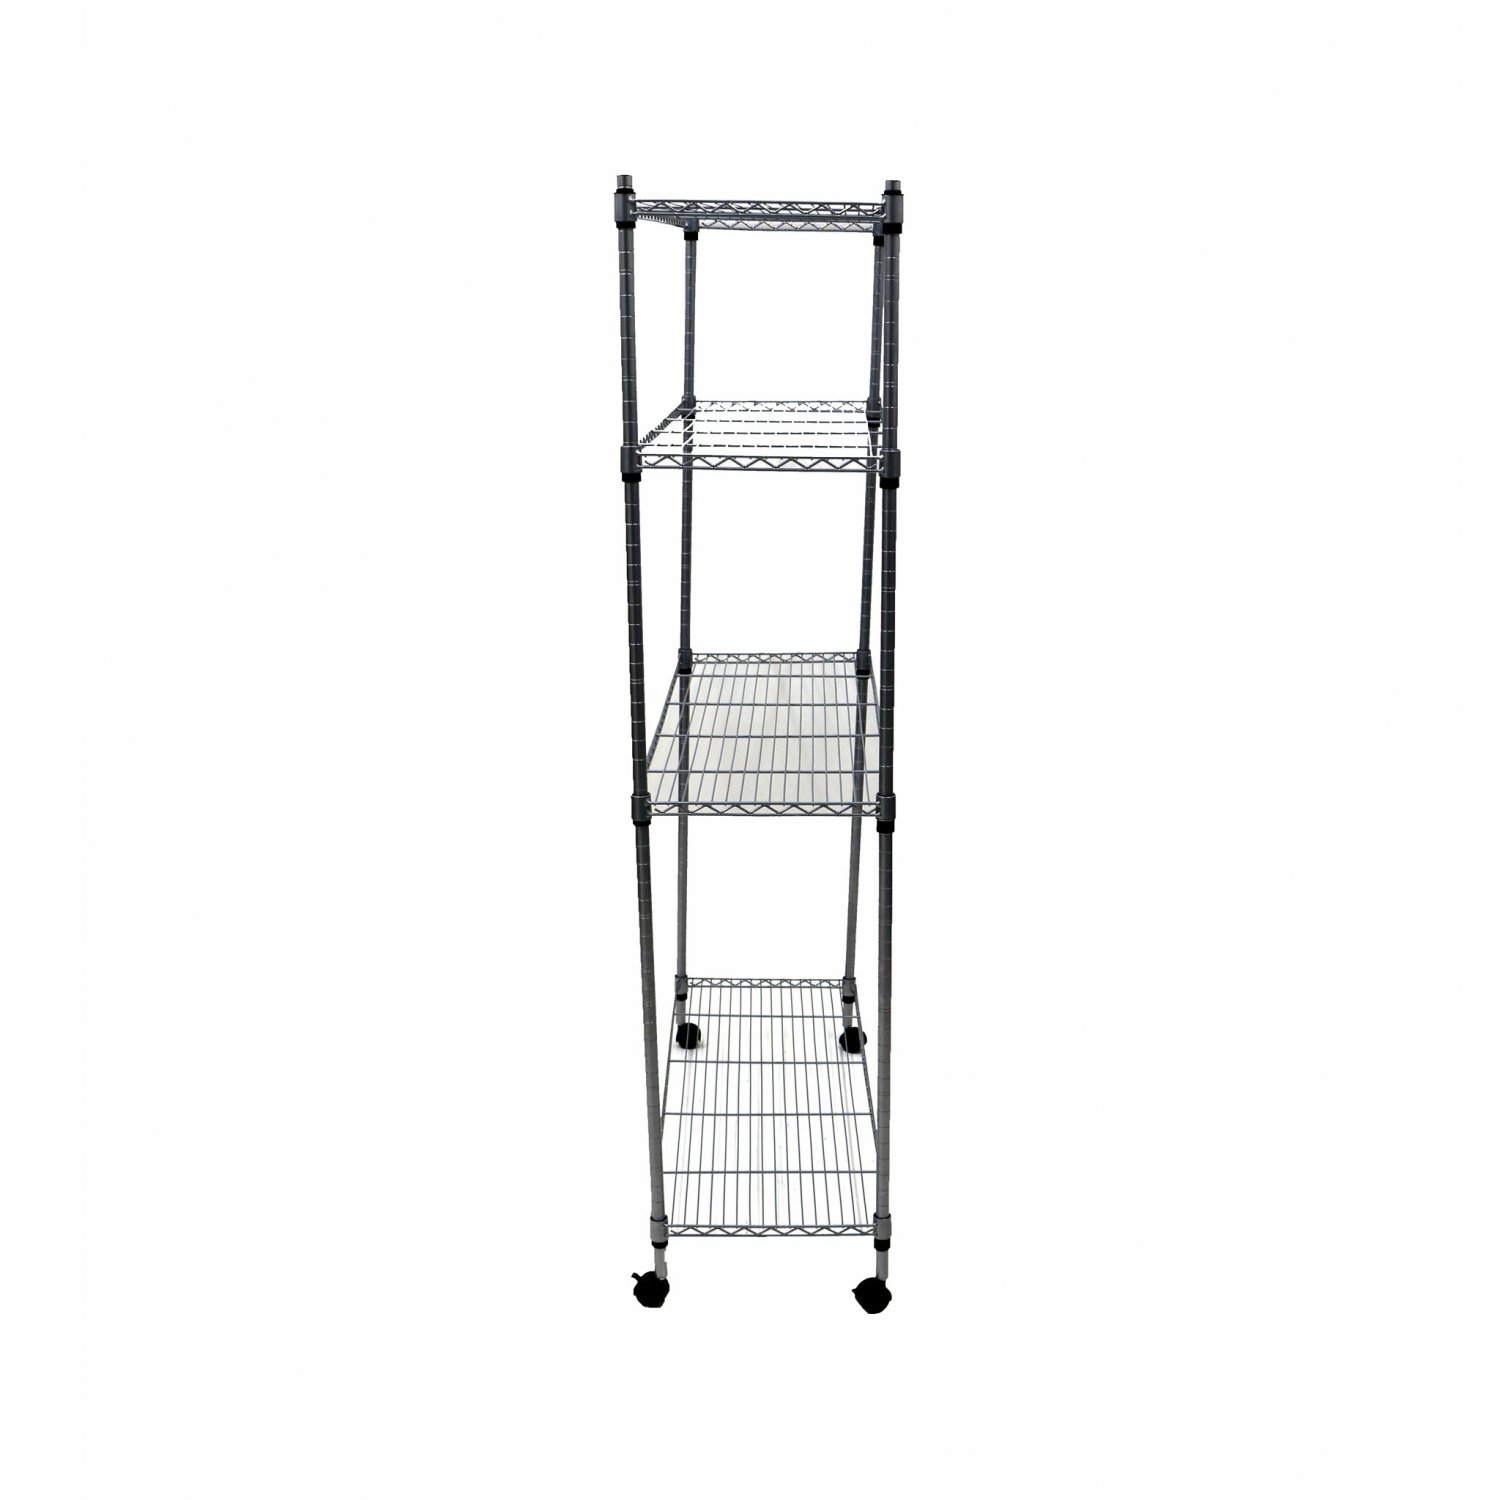 Famous Wire Spool Rack On Wheels Images Electrical And